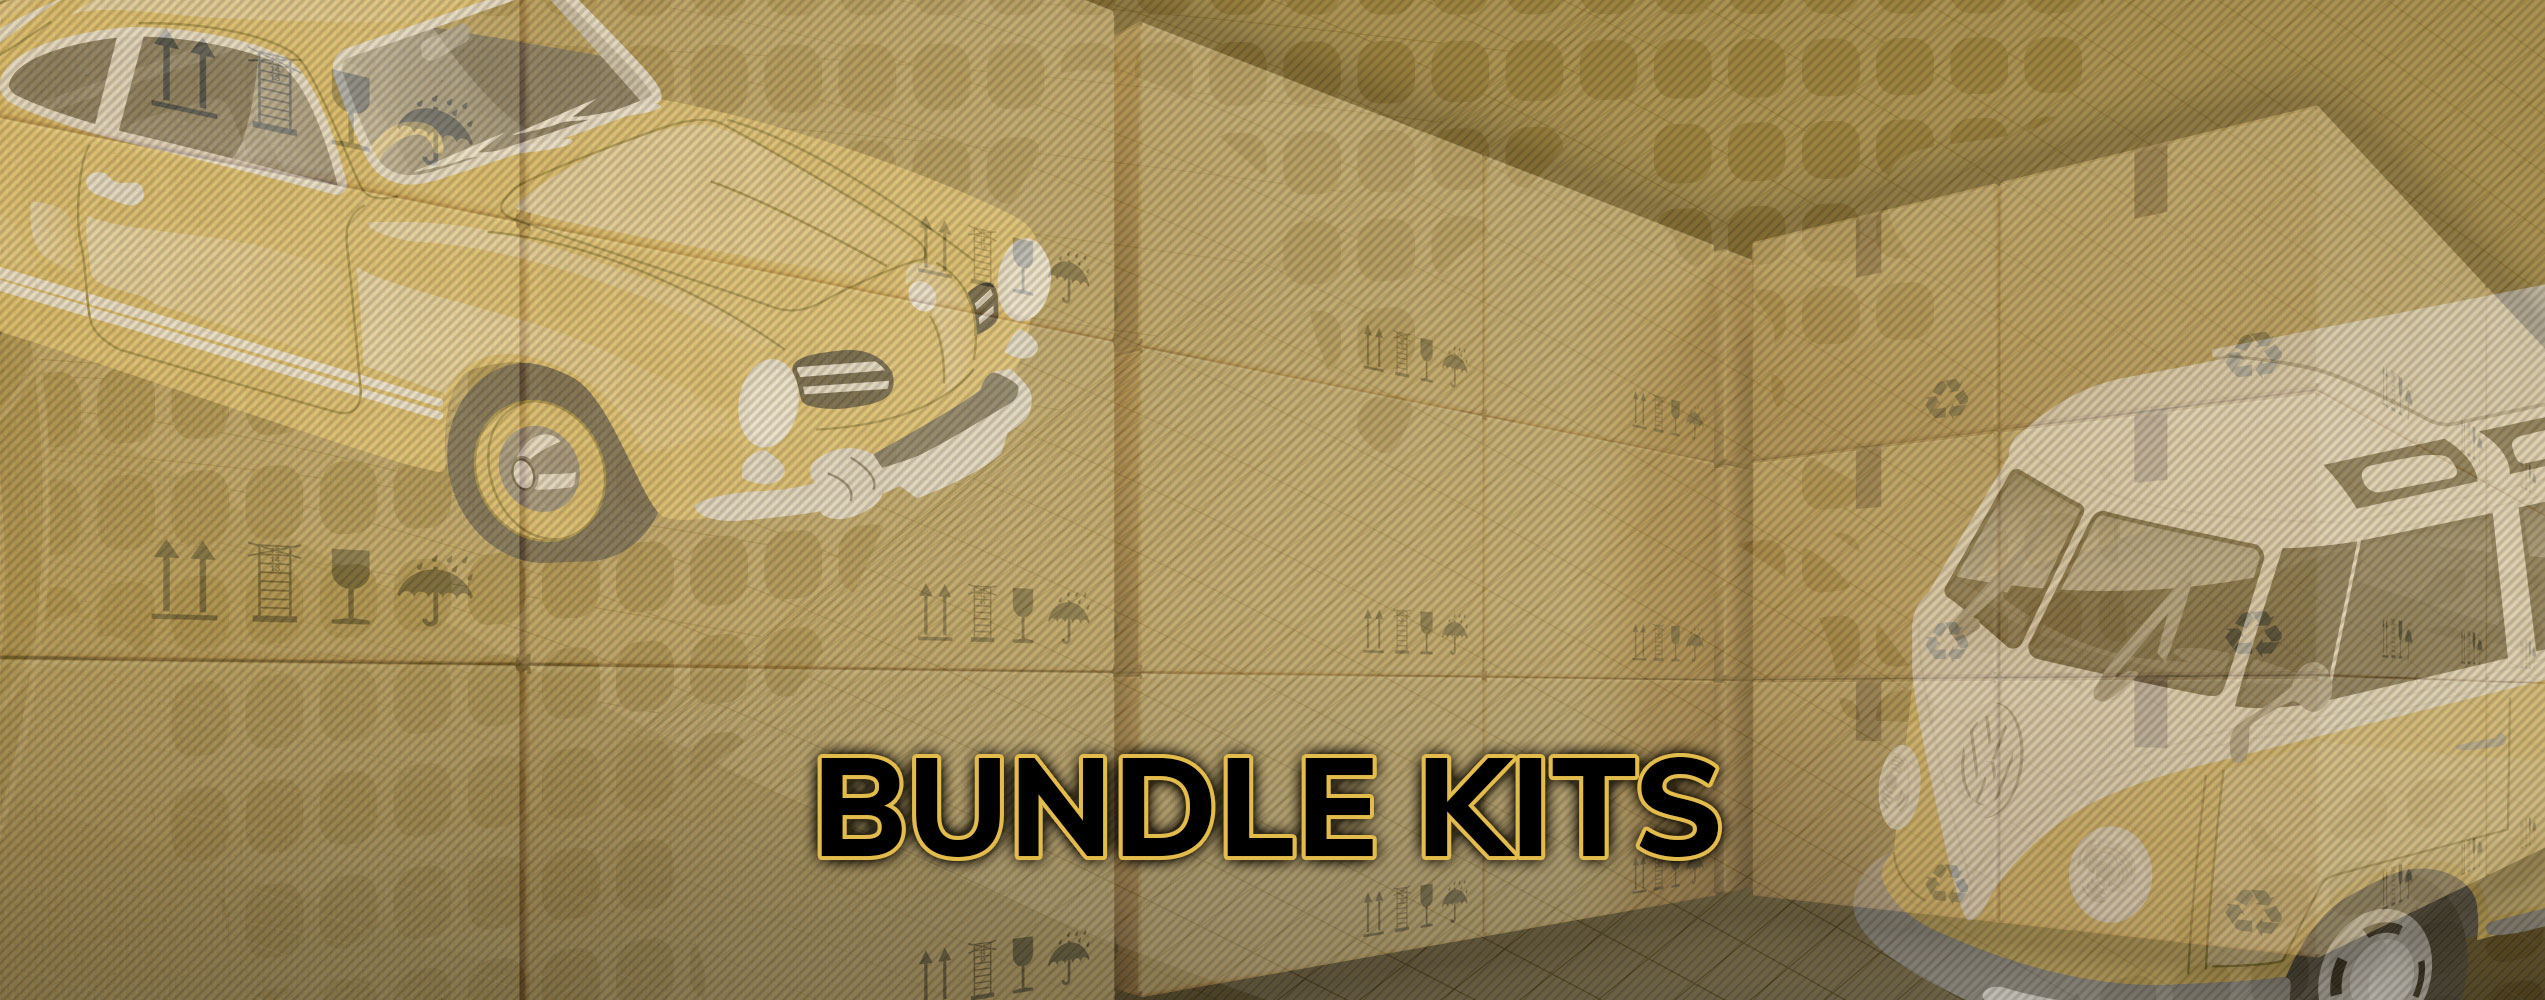 Bundle Kit of the week 12th March